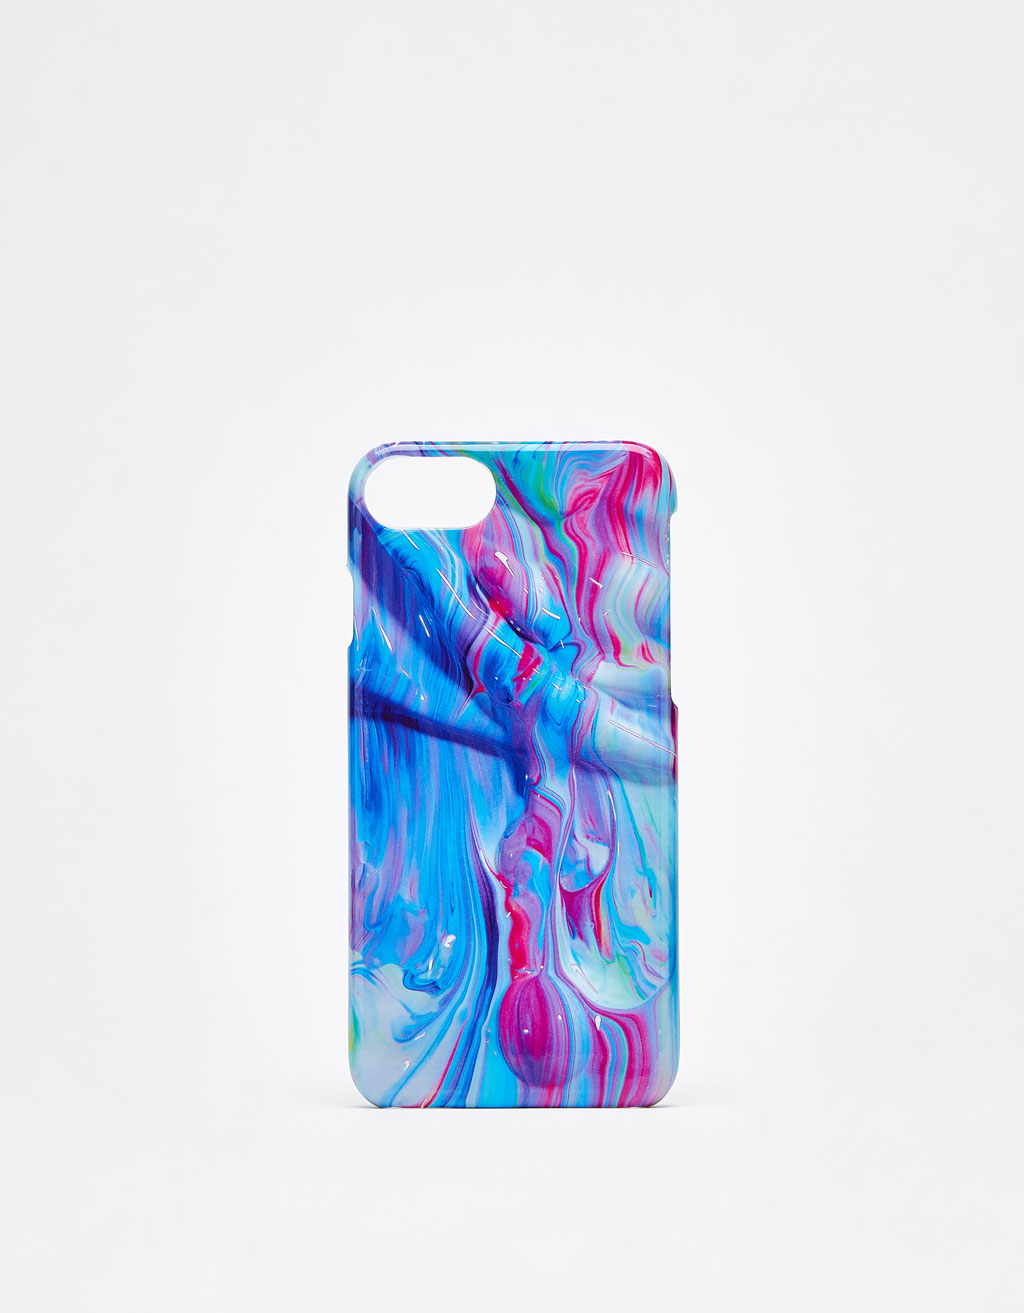 Watercolour iPhone 6/6s/7/8 case